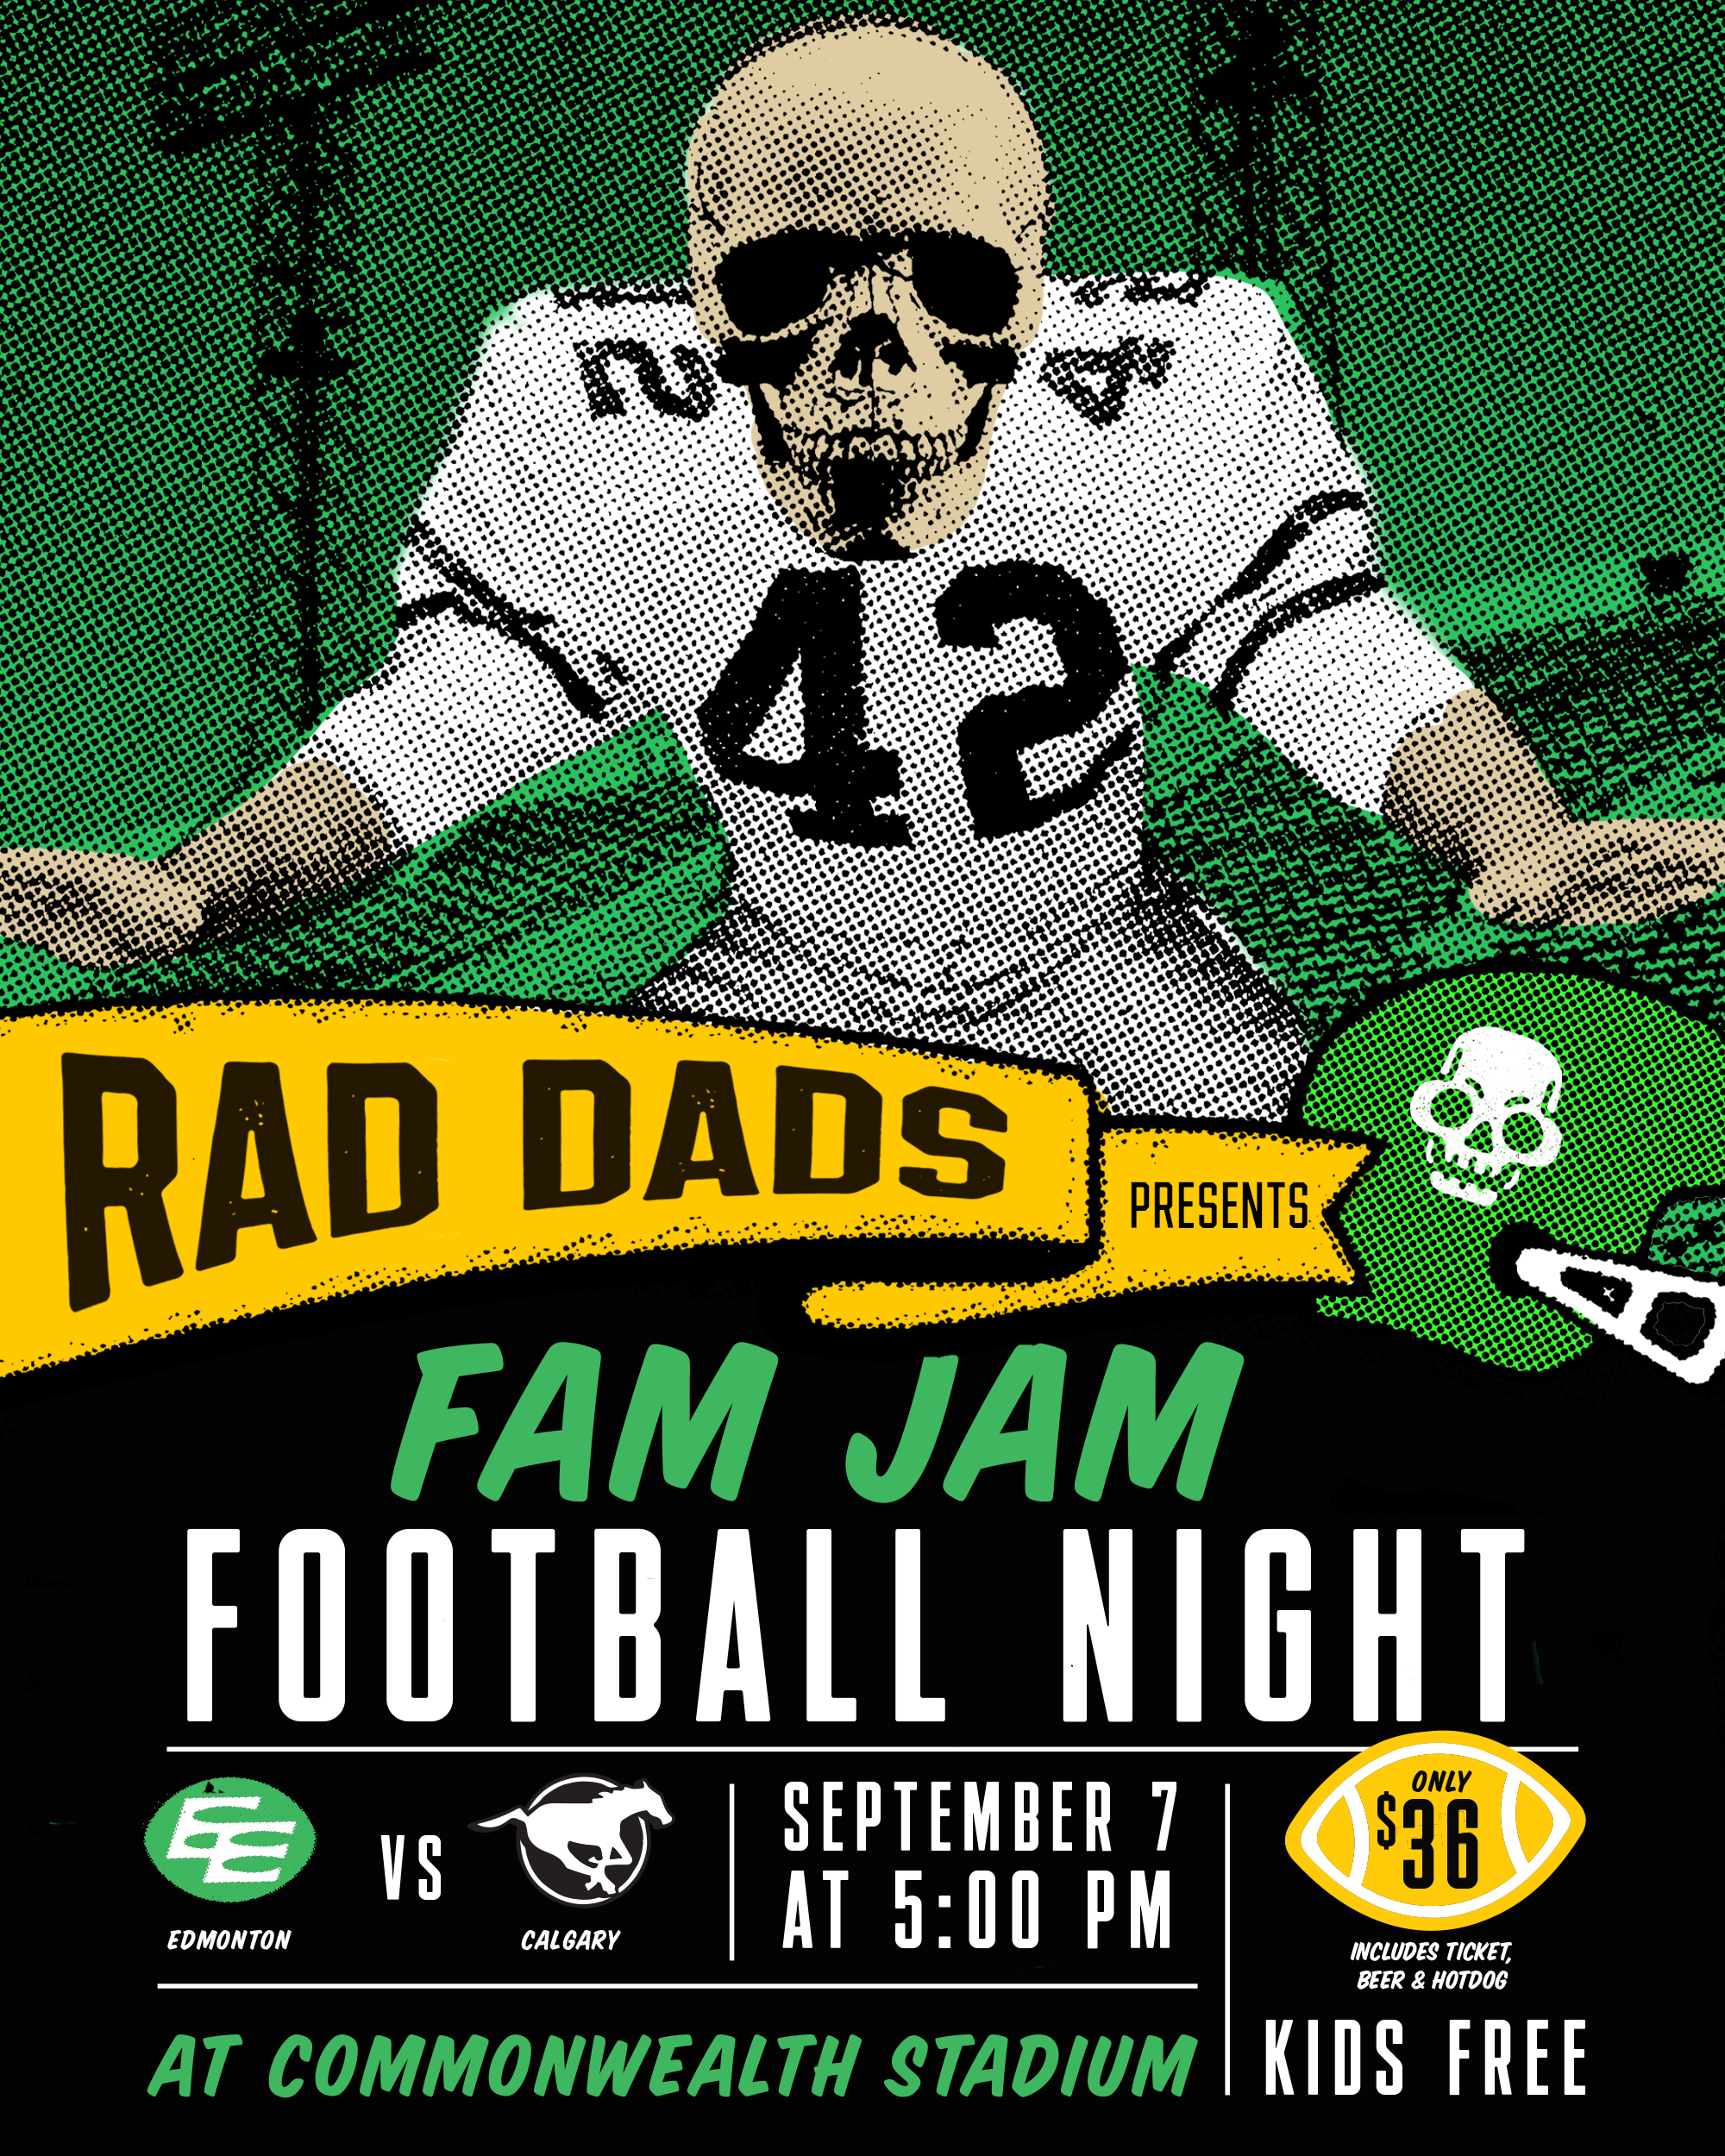 Rad Dads presents a Fam Jam Football Night on September 7 when the Edmonton Eskimos take on the Calgary Stampeders at Commonwealth Stadium. Kids are free with a paying adult and it's only $36 for a game ticket, drink (aka beer) and hotdog. Ticket link here:  Rad Dads Fam Jam Football Night